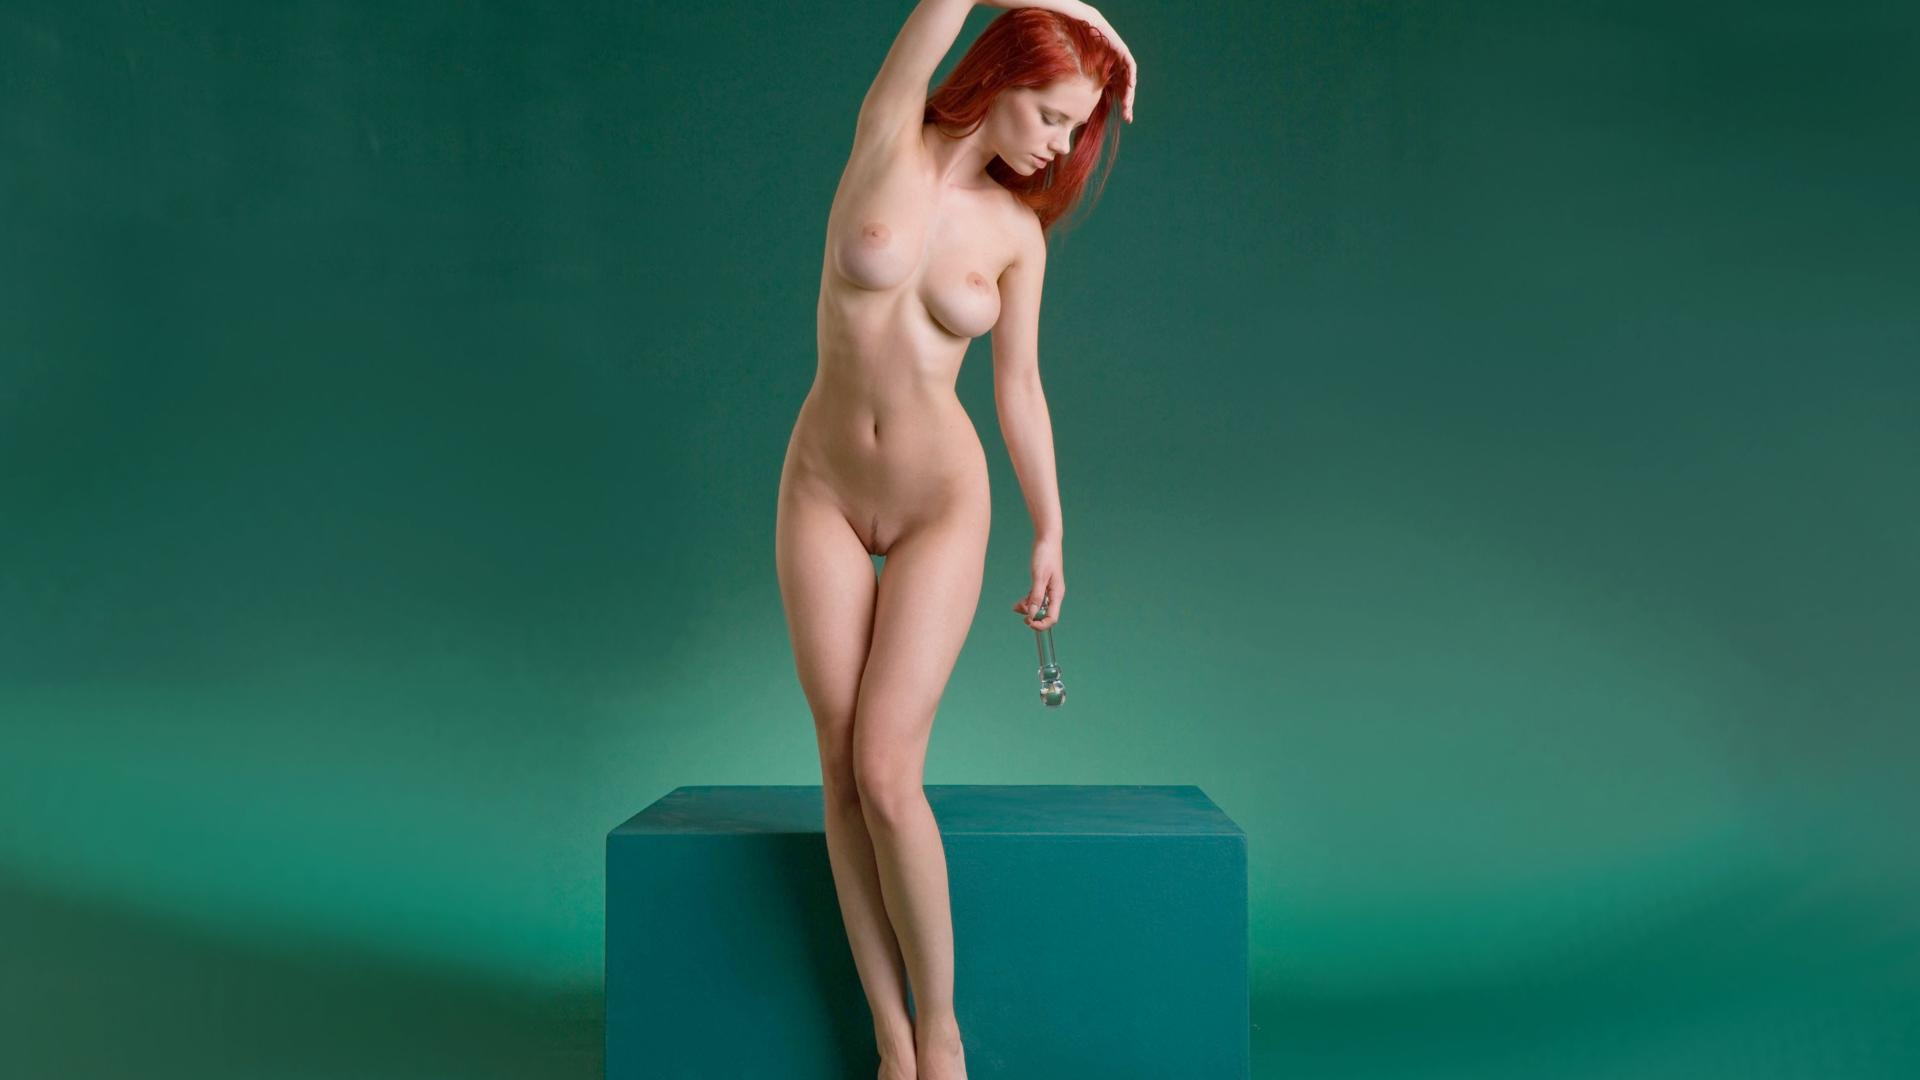 Download photo 1920x1080, ariel, red hair, nude, naked ...